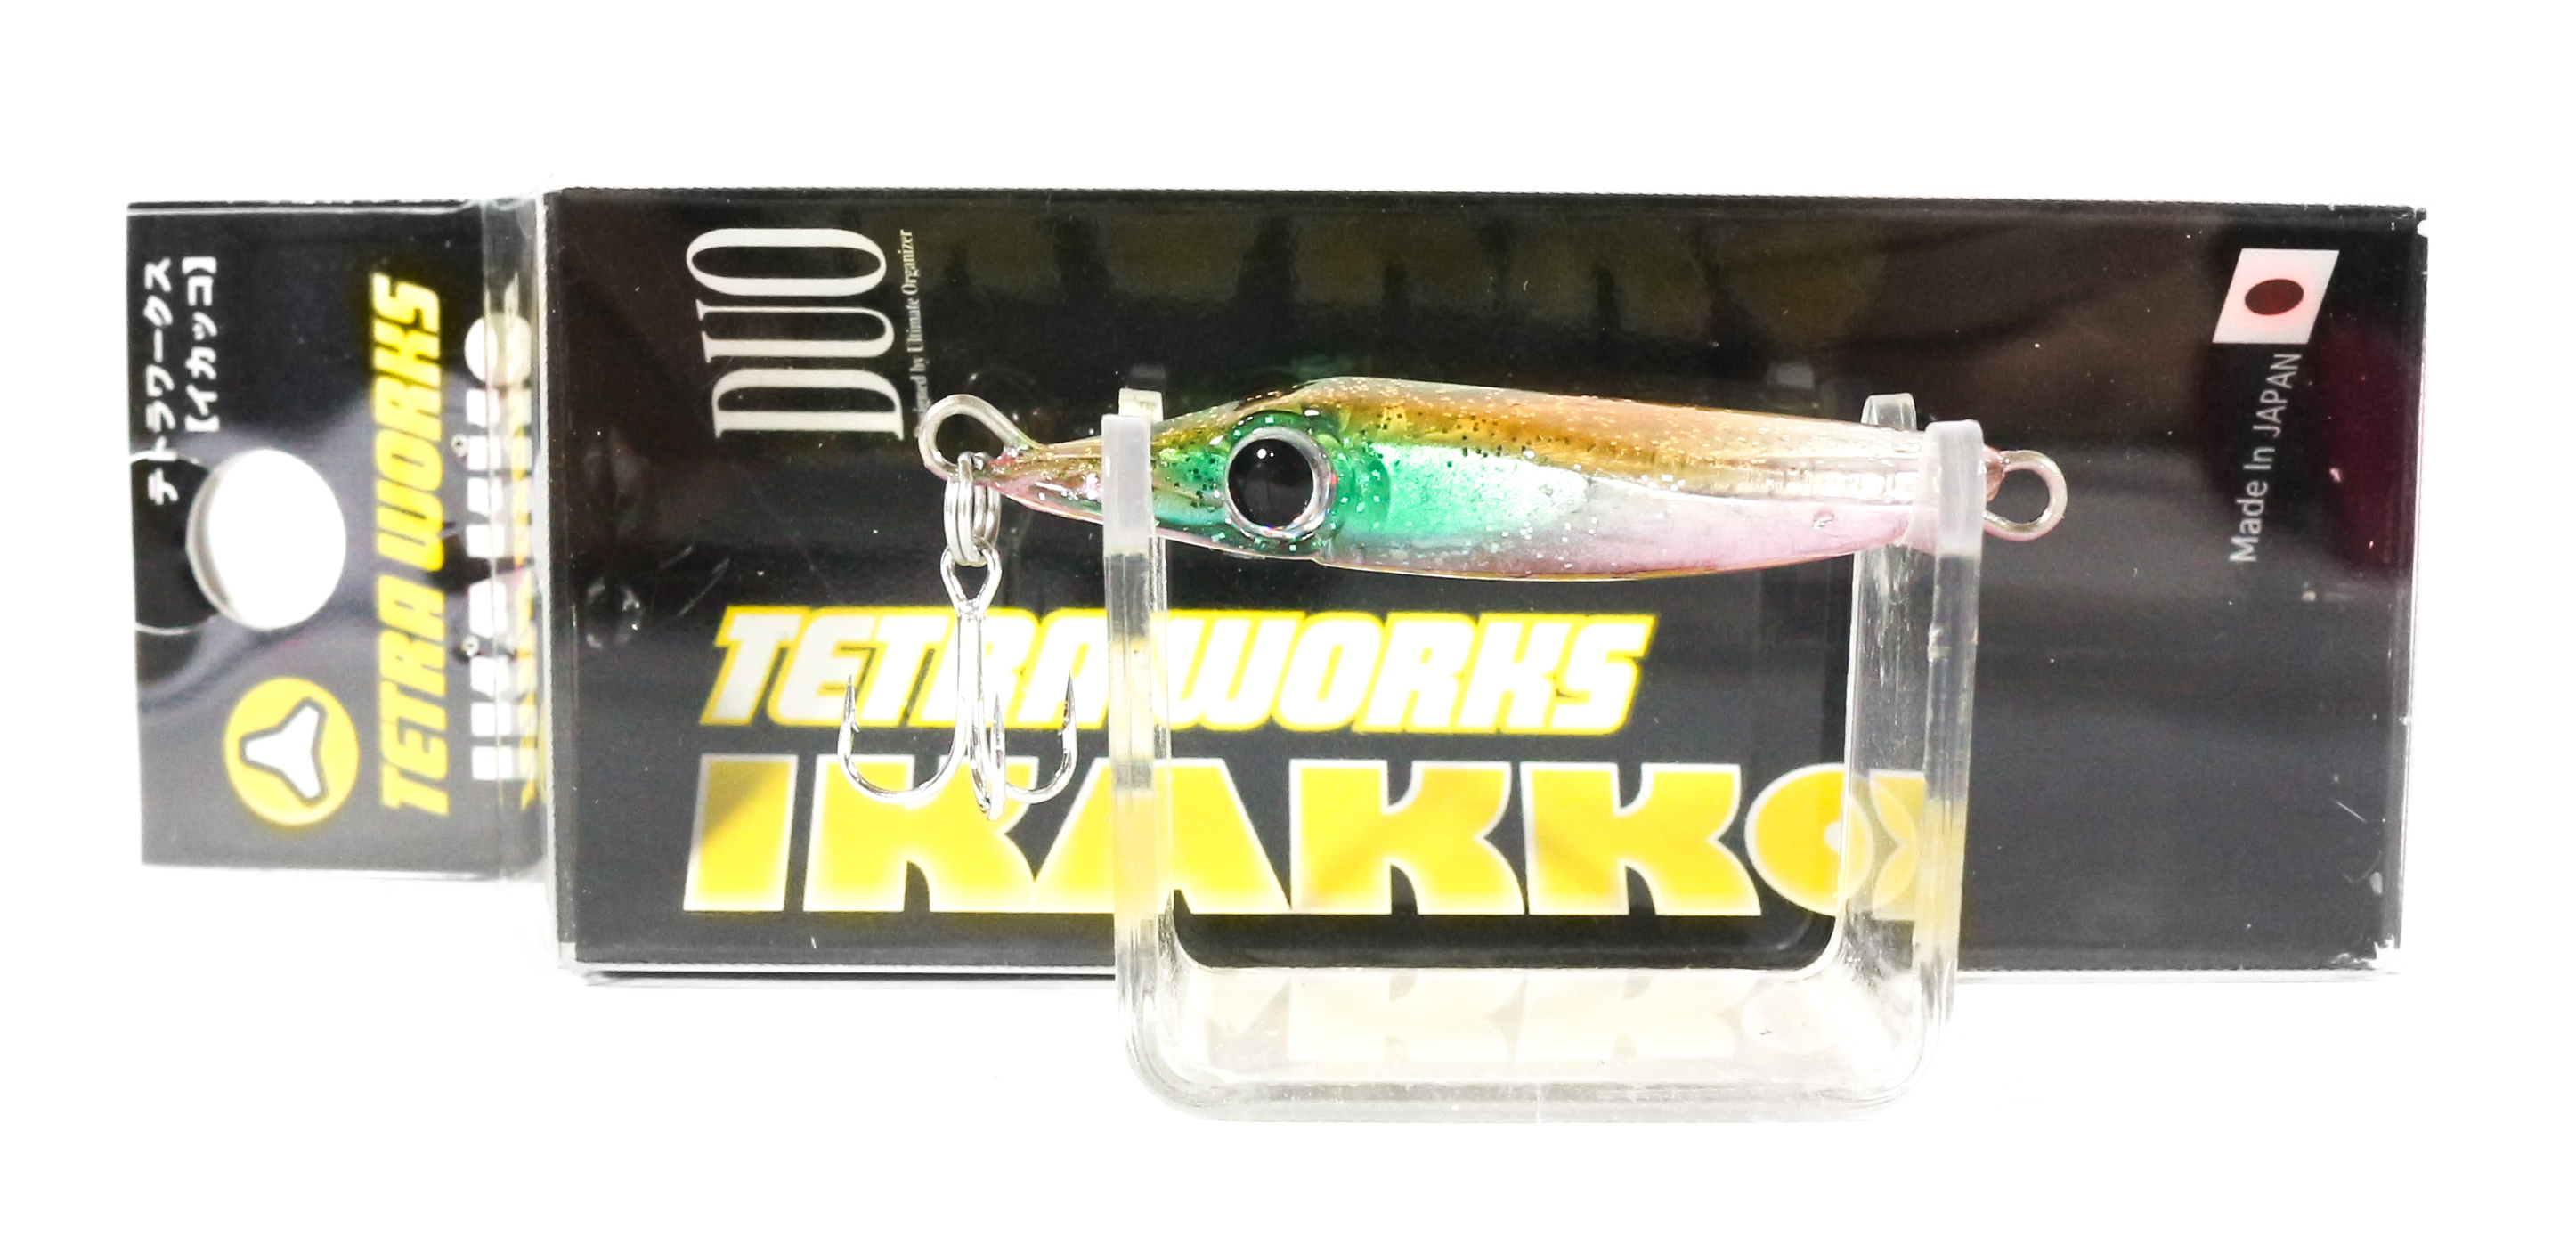 Duo Tetra Works Ikakko 38 mm Sinking Lure CCC0466 (6764)